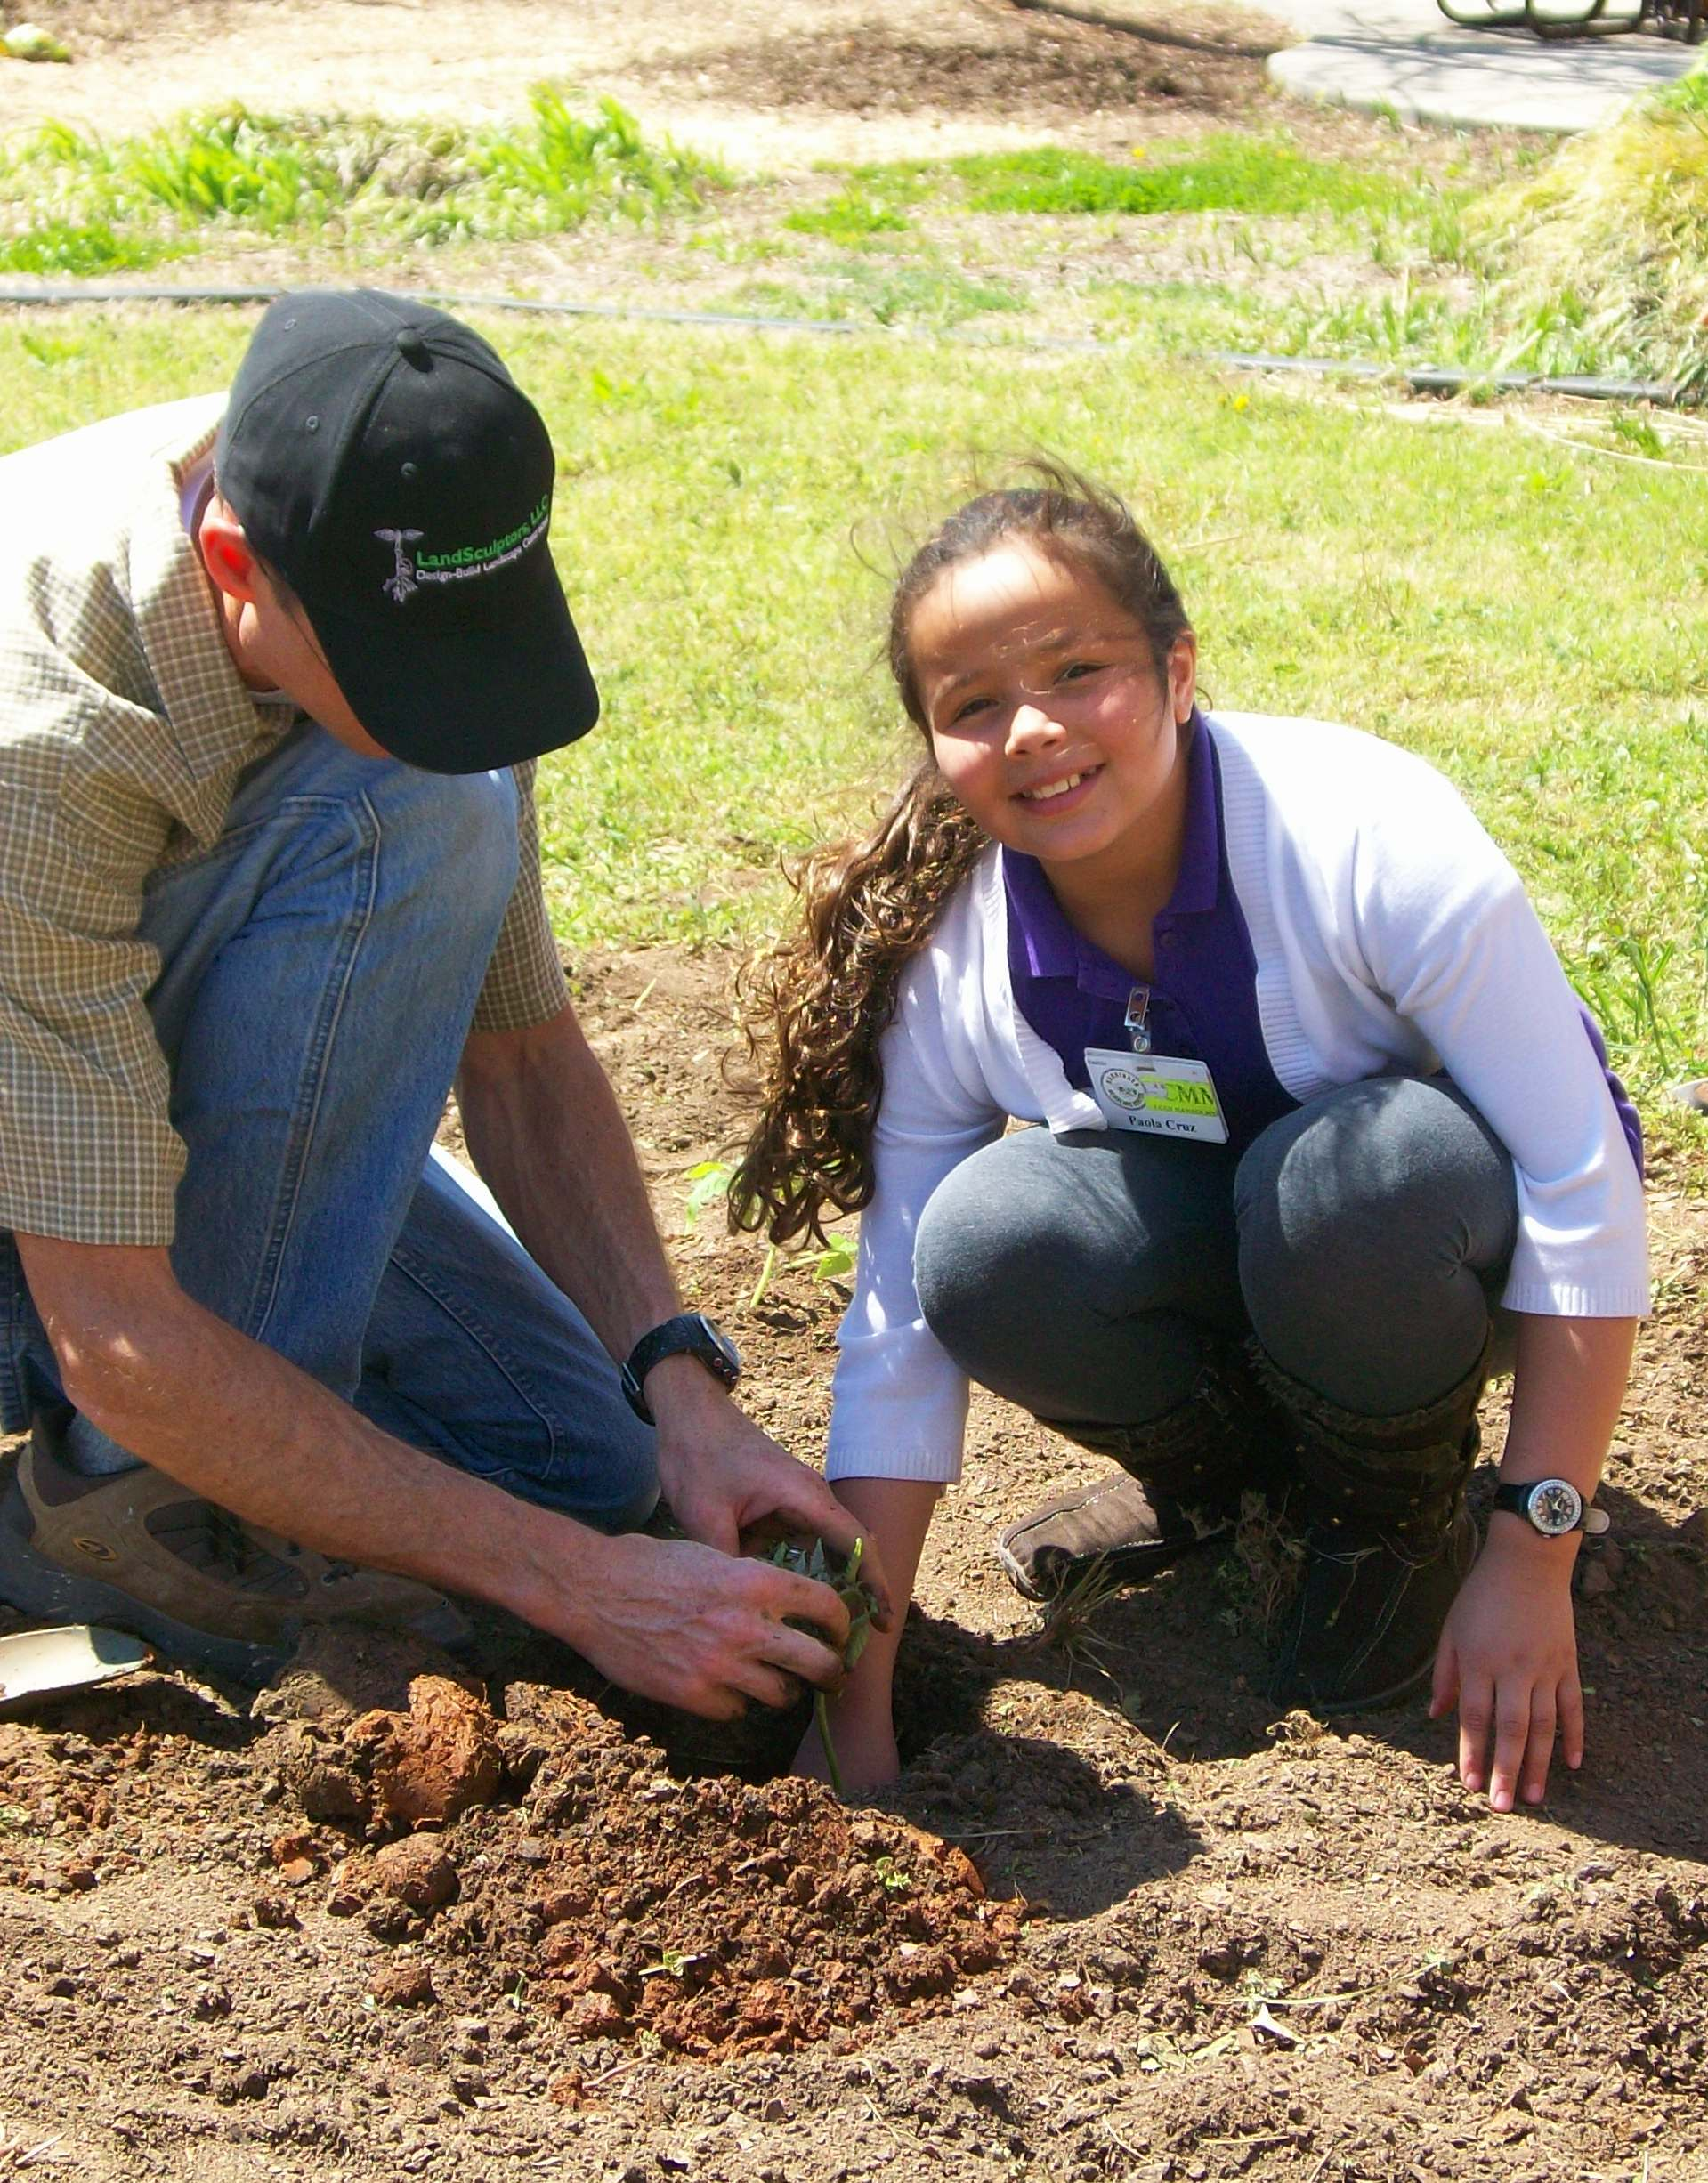 Student Planting Vegetables - Field to Fork